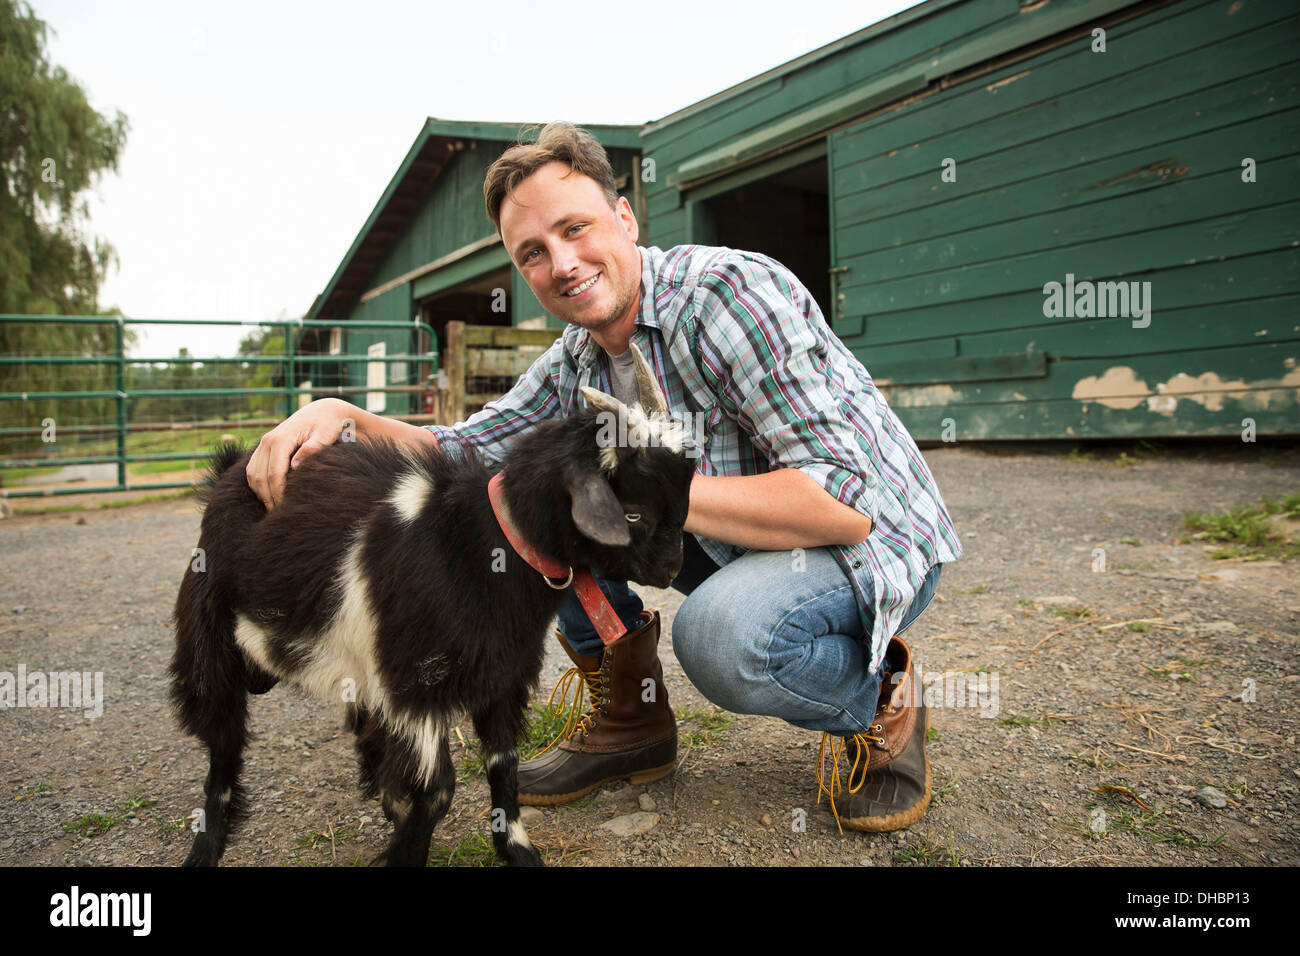 An organic farm in the Catskills. A man with a small goat on a halter. Stock Photo